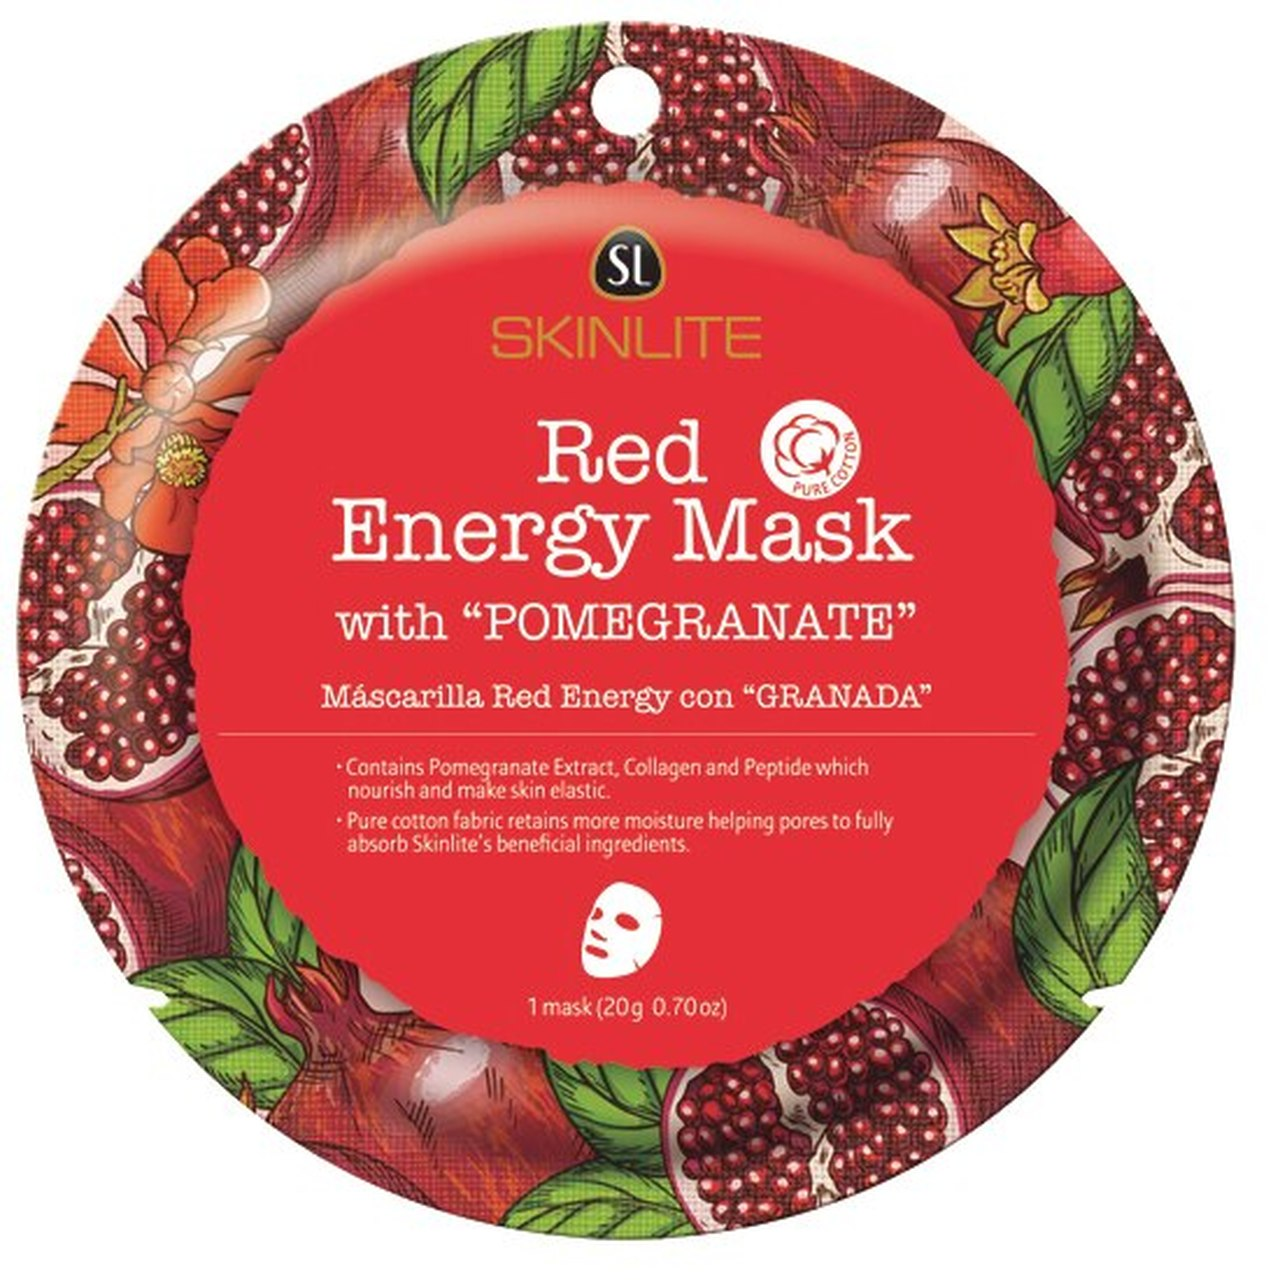 SKINLITE - Red Energy Mask with Pomegranate